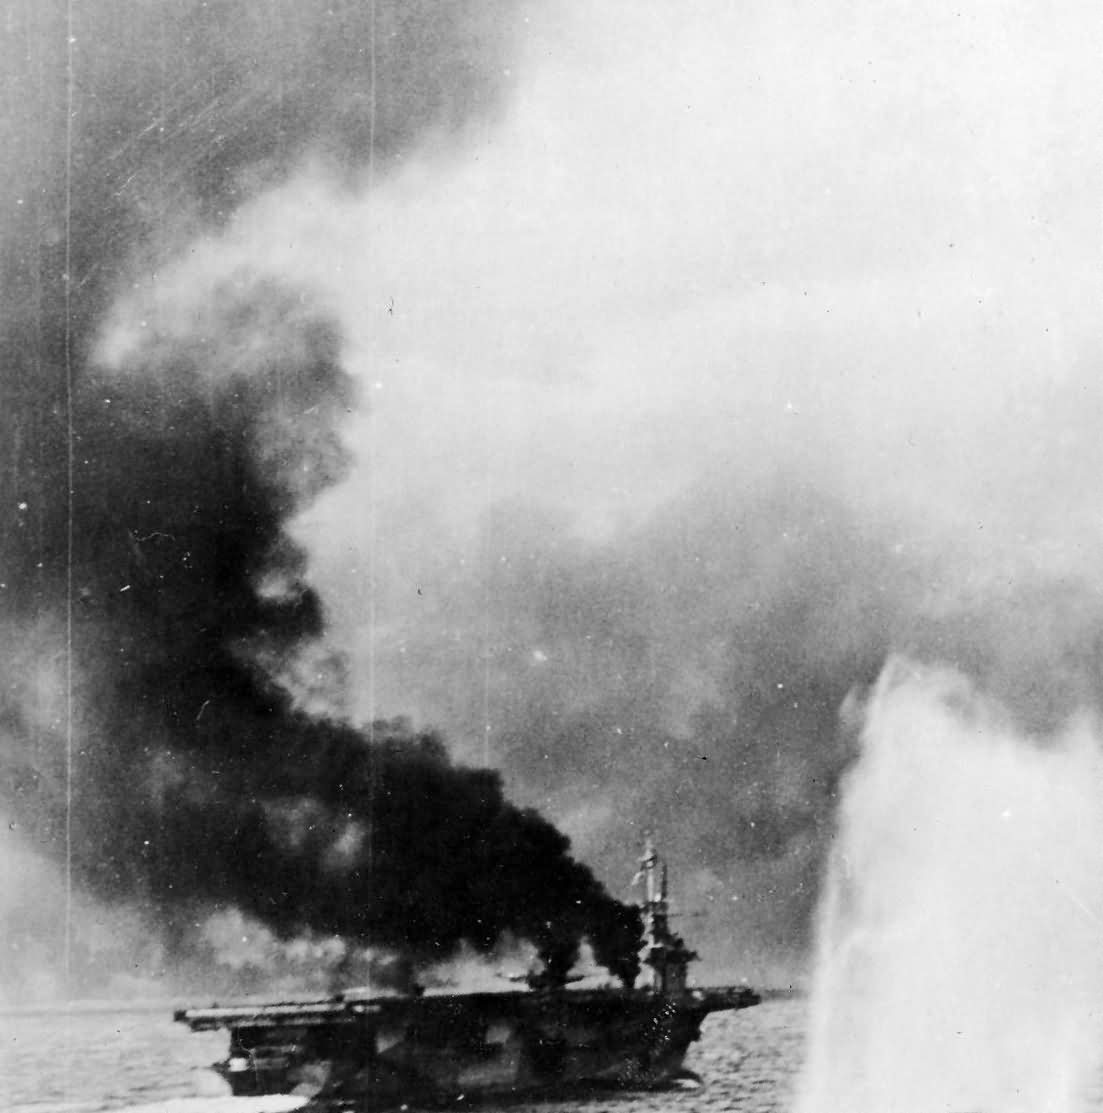 Japanese salvo hits near US Carrier Battle of Leyte Gulf 1944